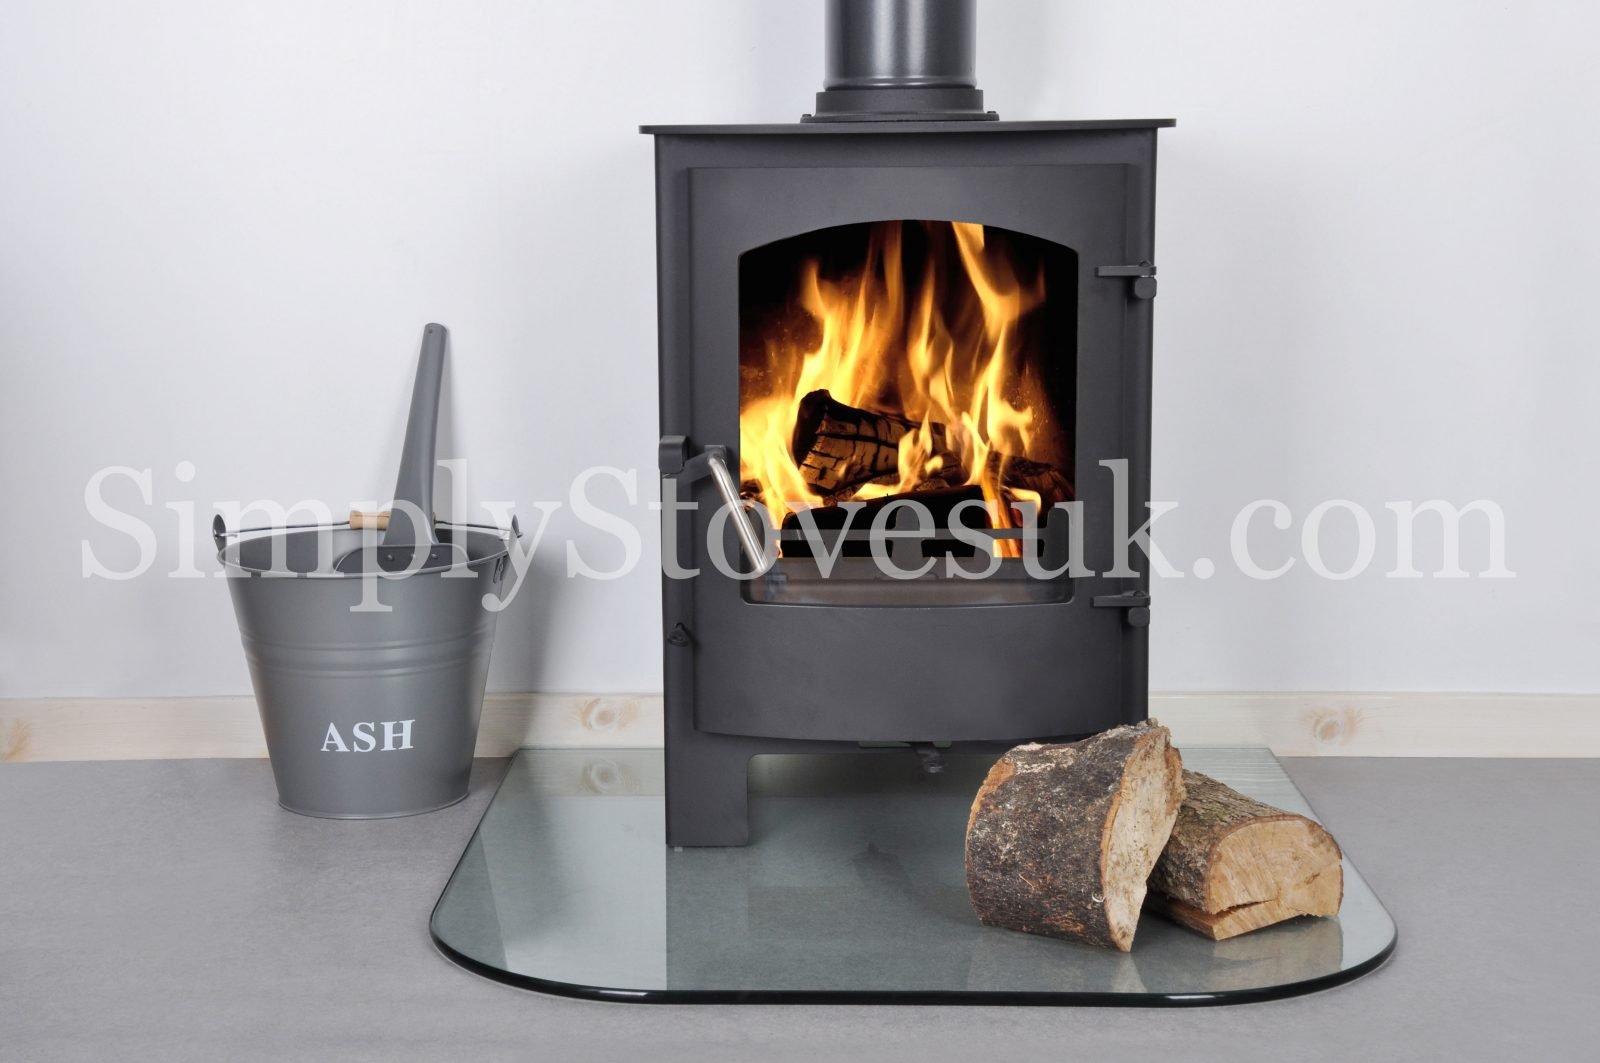 Standard Medium Glass Hearth Floor Plate Simply Stoves